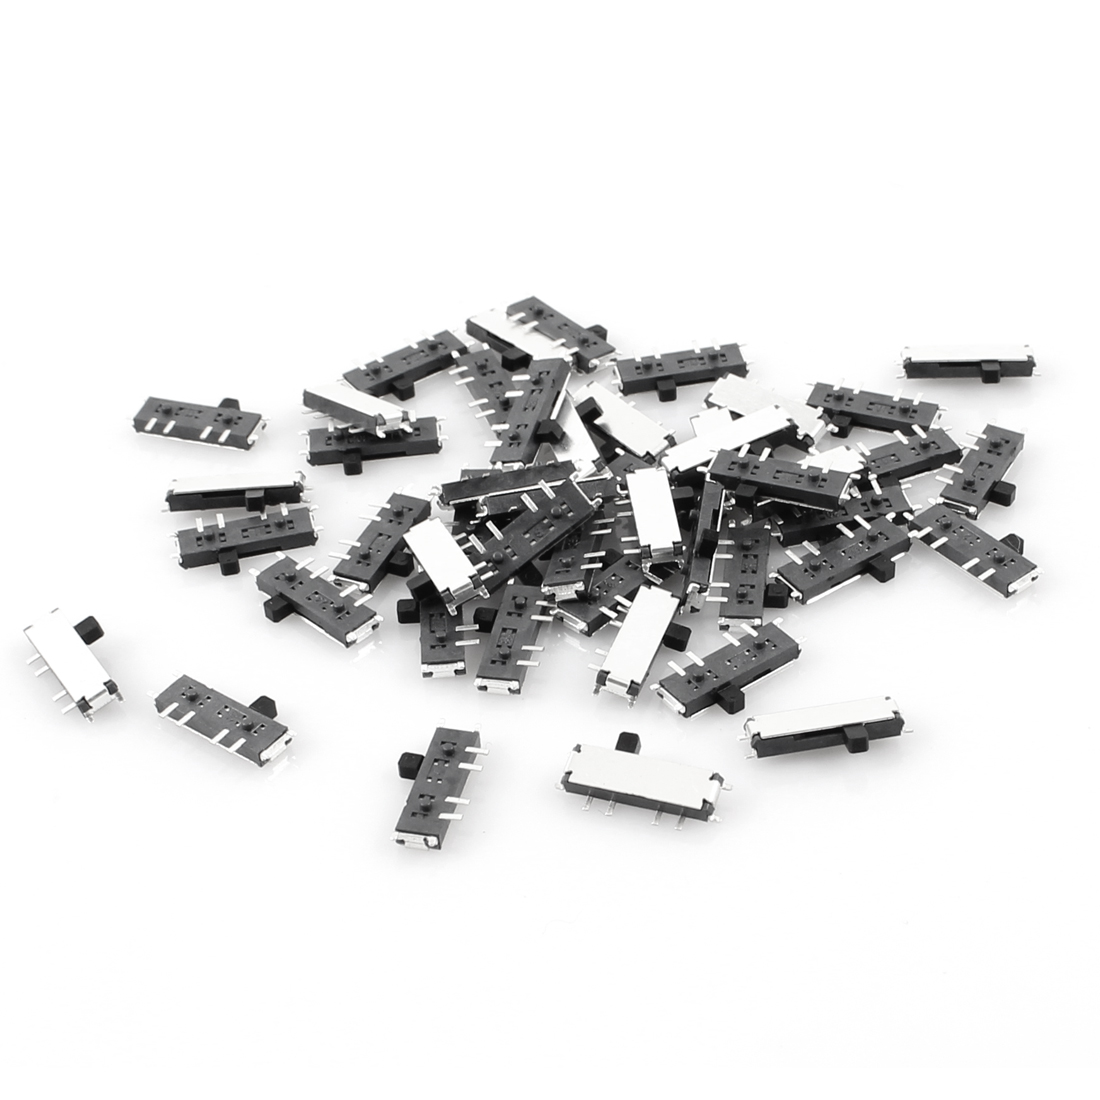 50 Pcs On/Off/On 3-Position 8 Pin DPDT Mini SMD SMT Slide Switch 10mm x 3mm